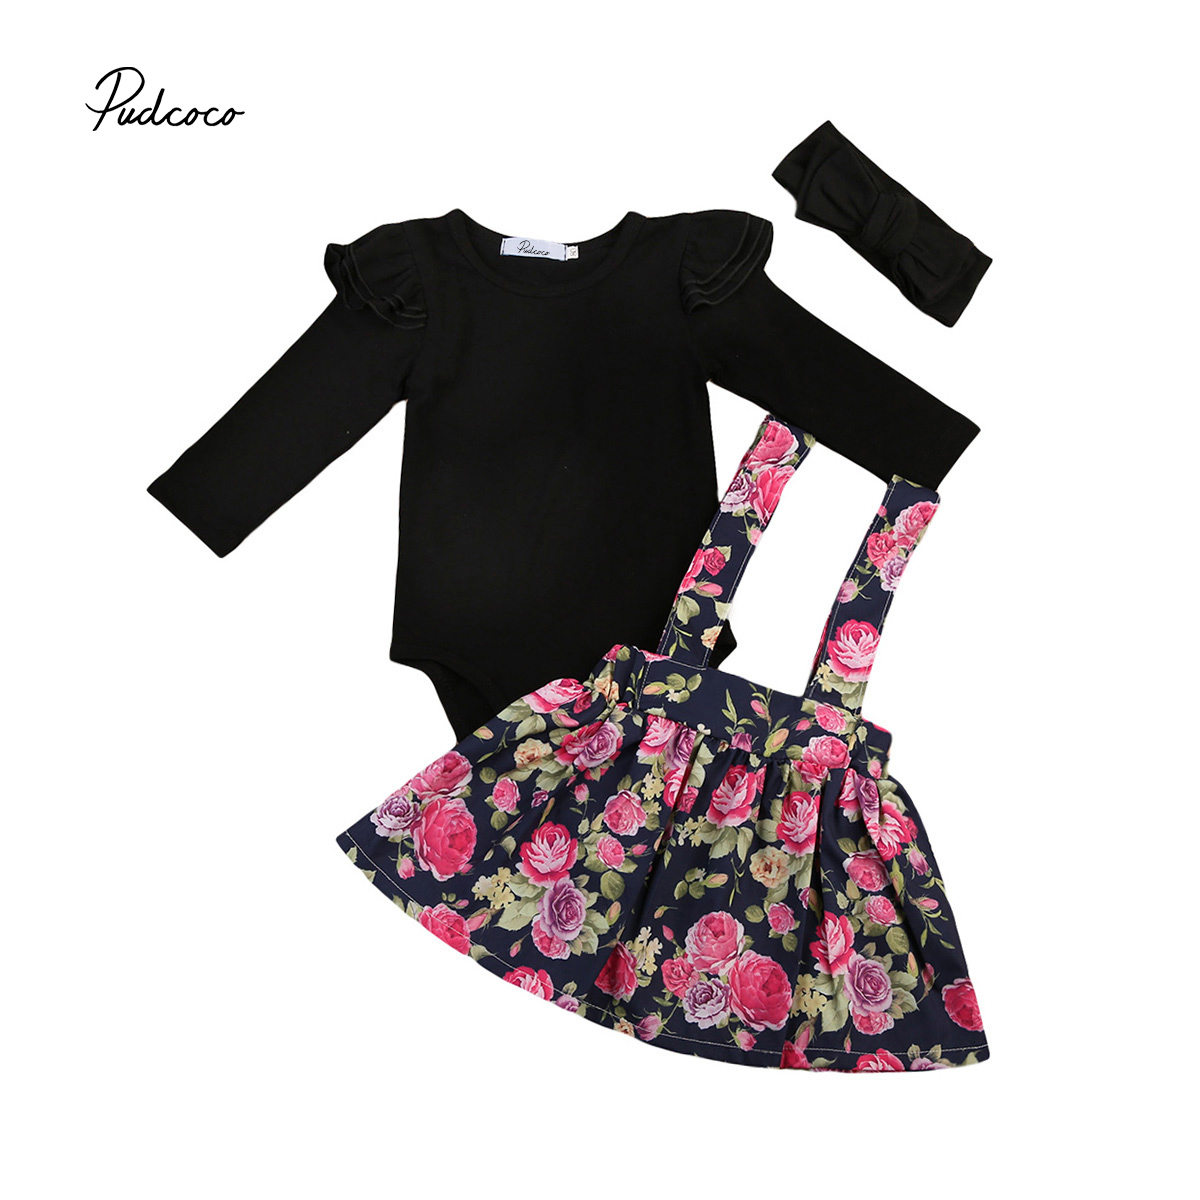 Newly Kids Clothe Set Toddler Baby Flower Girls Romper Tops+Tutu Floral mini Dress+Headband 3Pcs Outfit Baby Clothing Set 0-24M